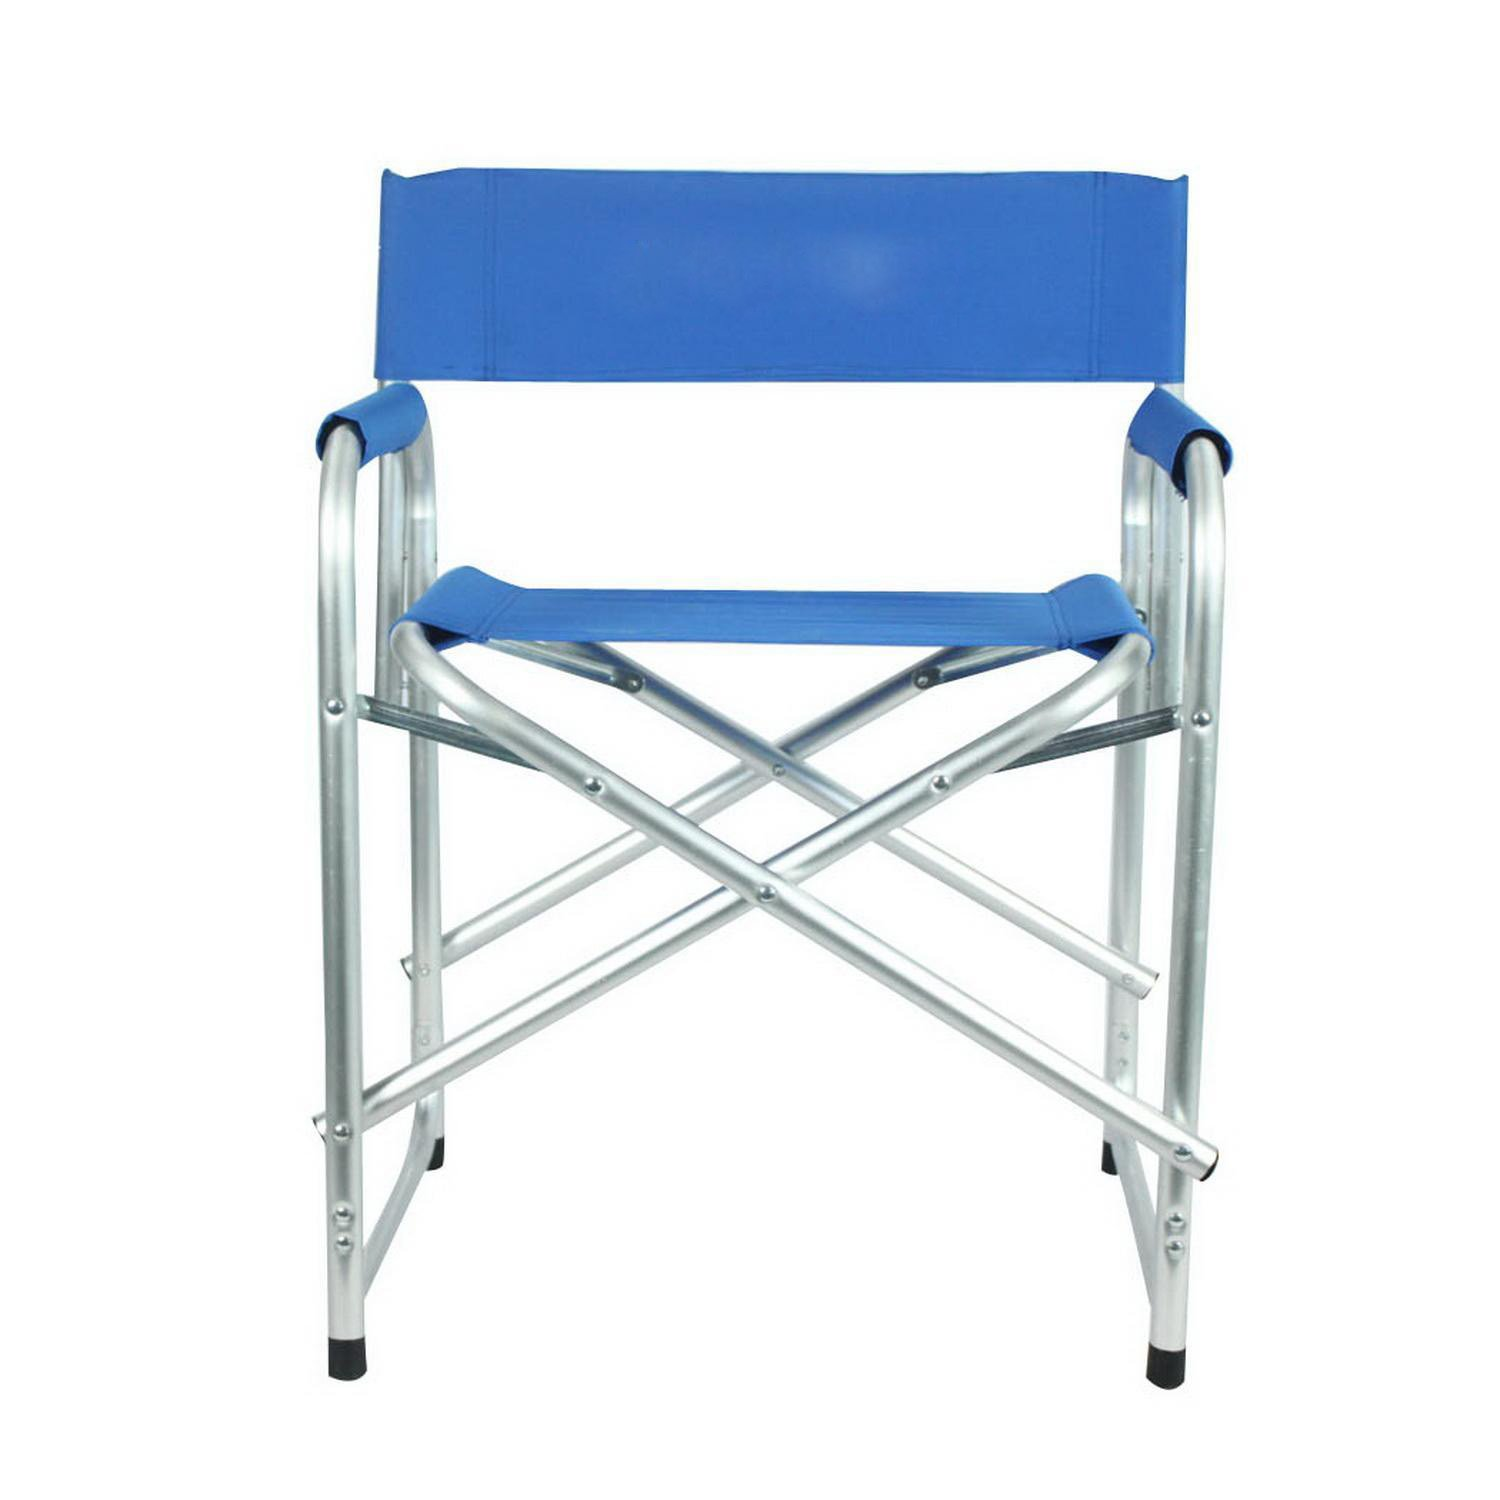 Portable Folding Director's Chair with Side Table [US Stock] (Blue) by Cosway